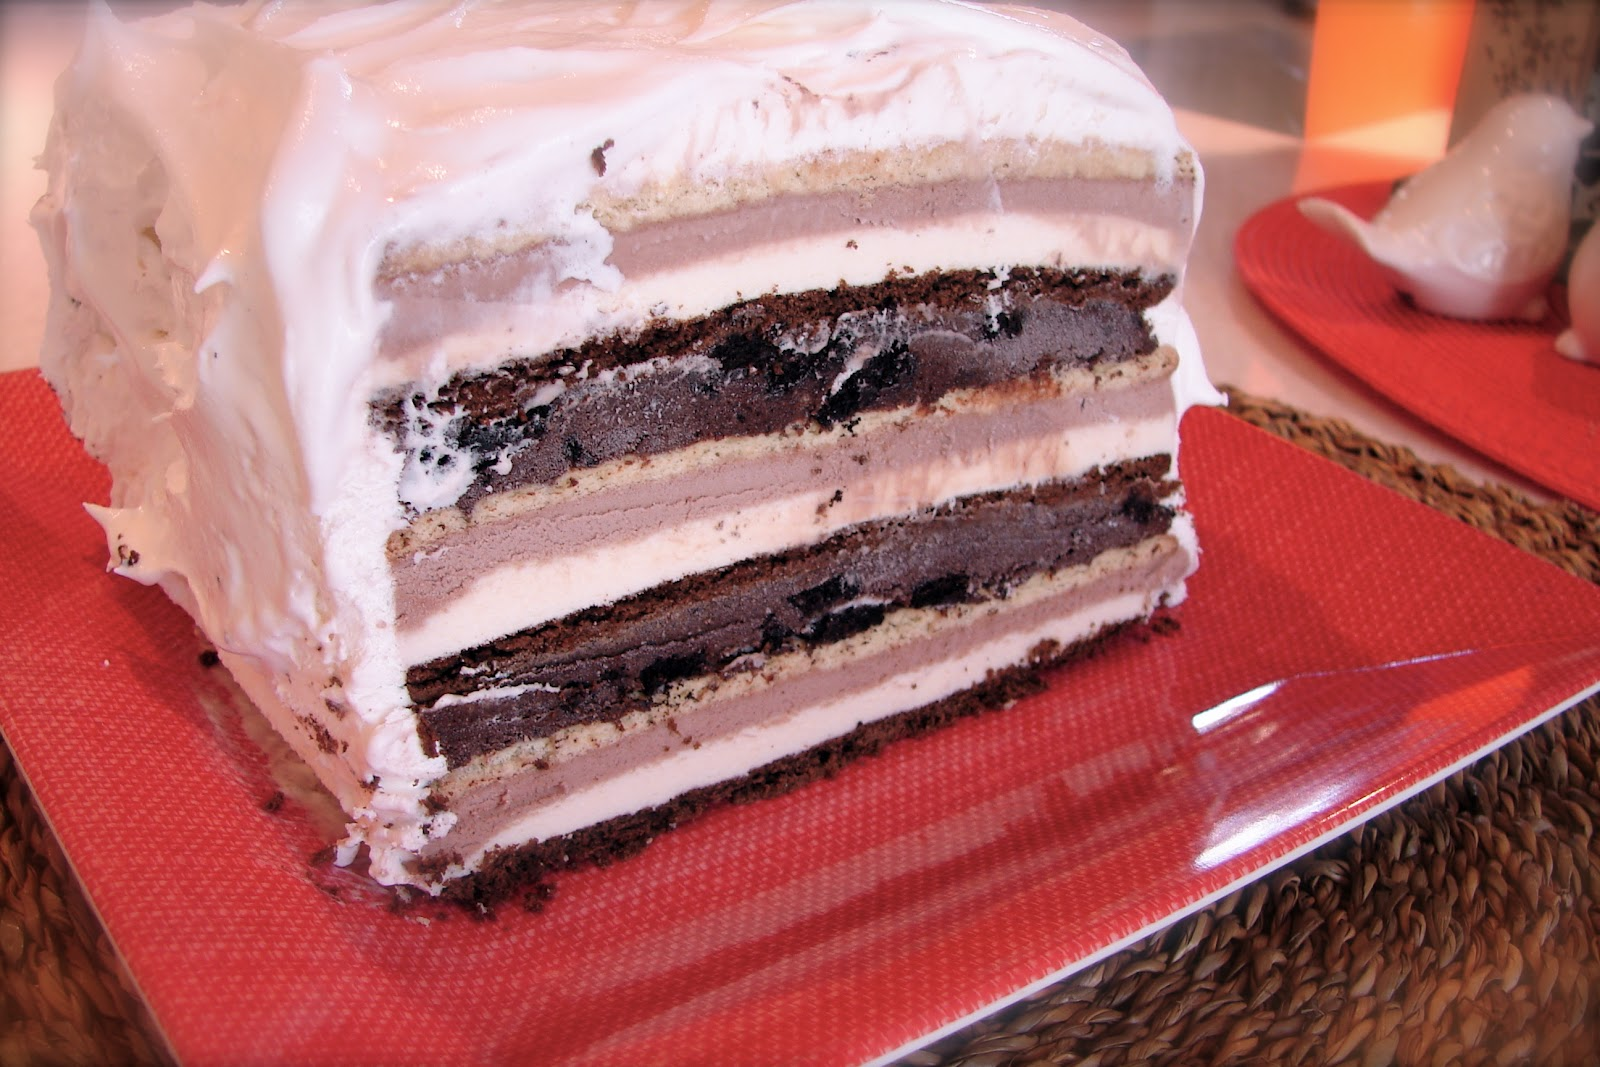 Cake Ice Cream Sandwich Recipe : COSMOGIRL S EMPORIUM: DIY Ice Cream Cake